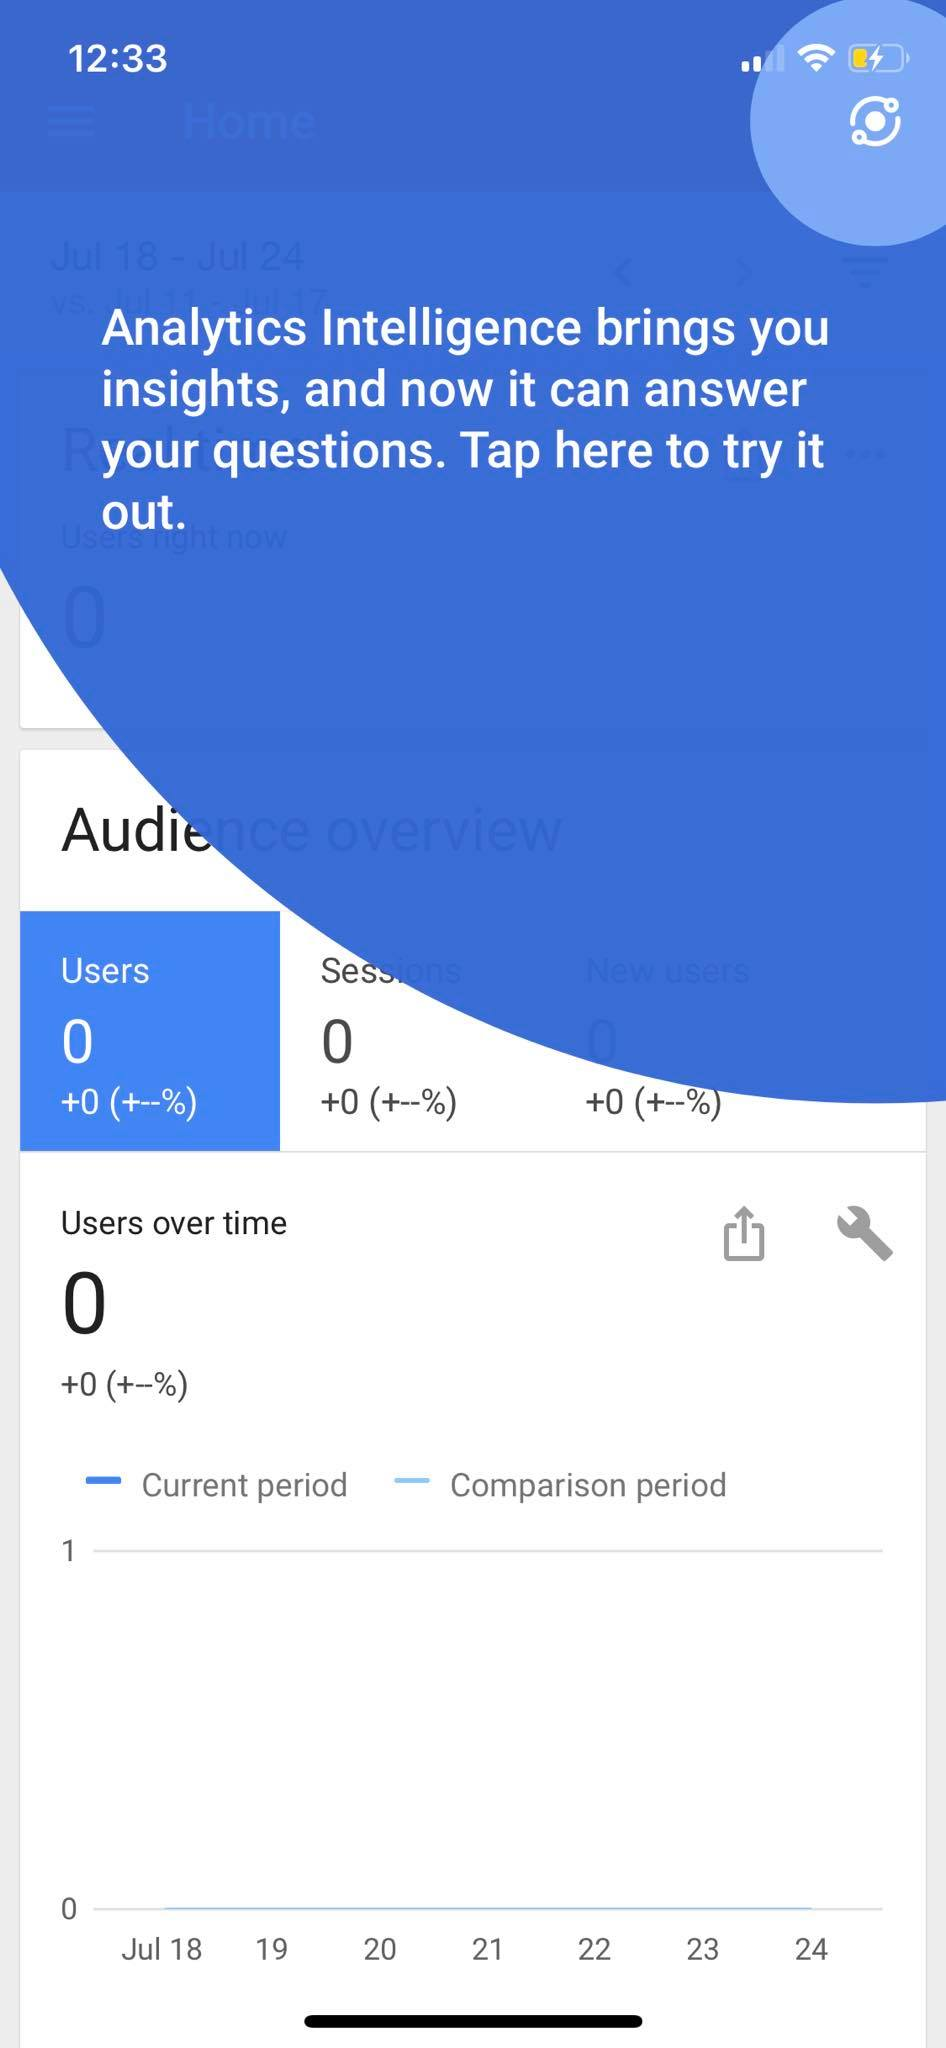 Tutorial on iOS by Google Analytics from UIGarage